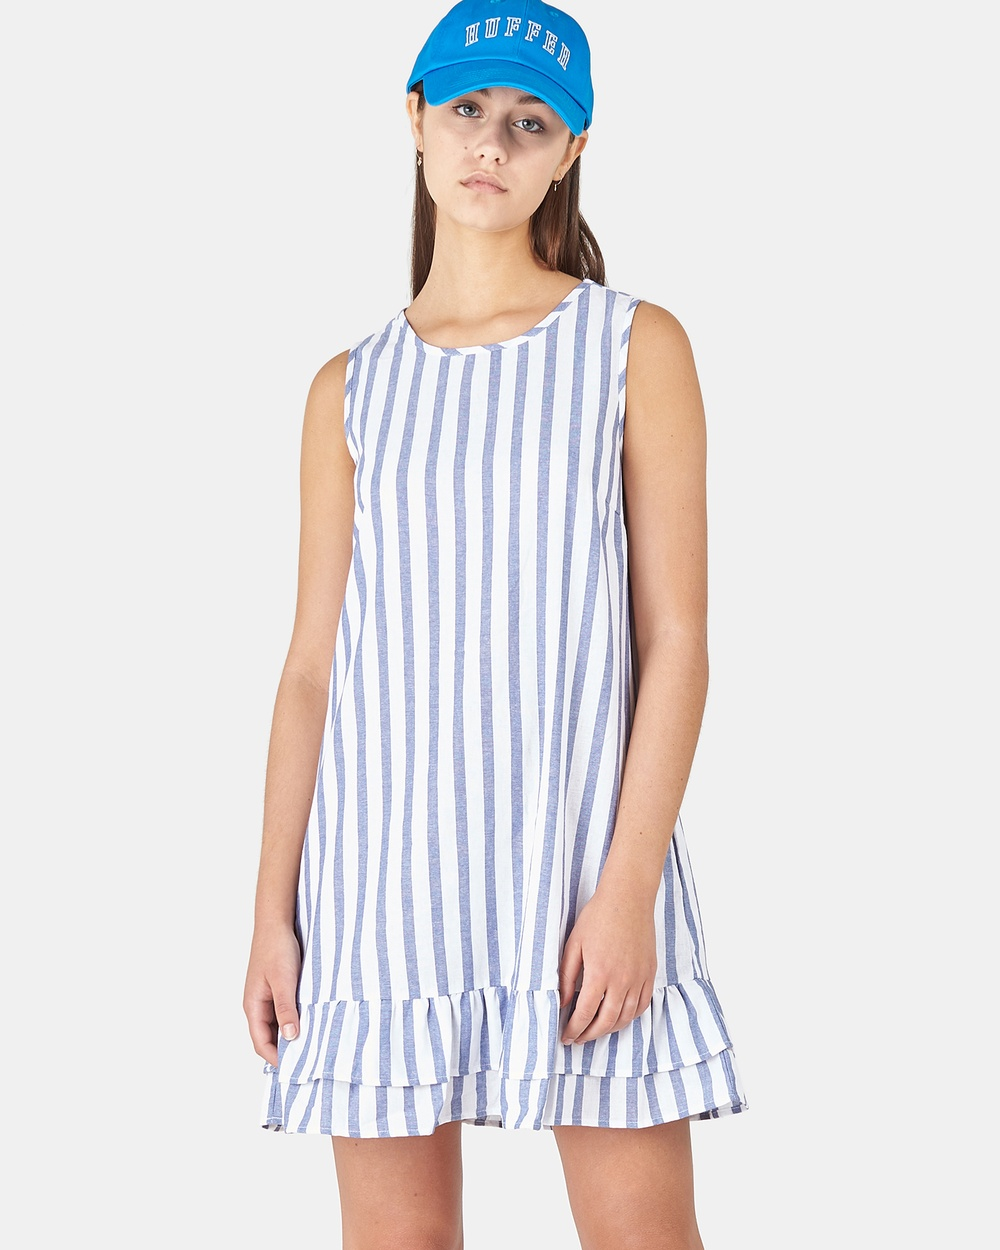 Huffer BLUE/WHITE Hooper Lila Dress